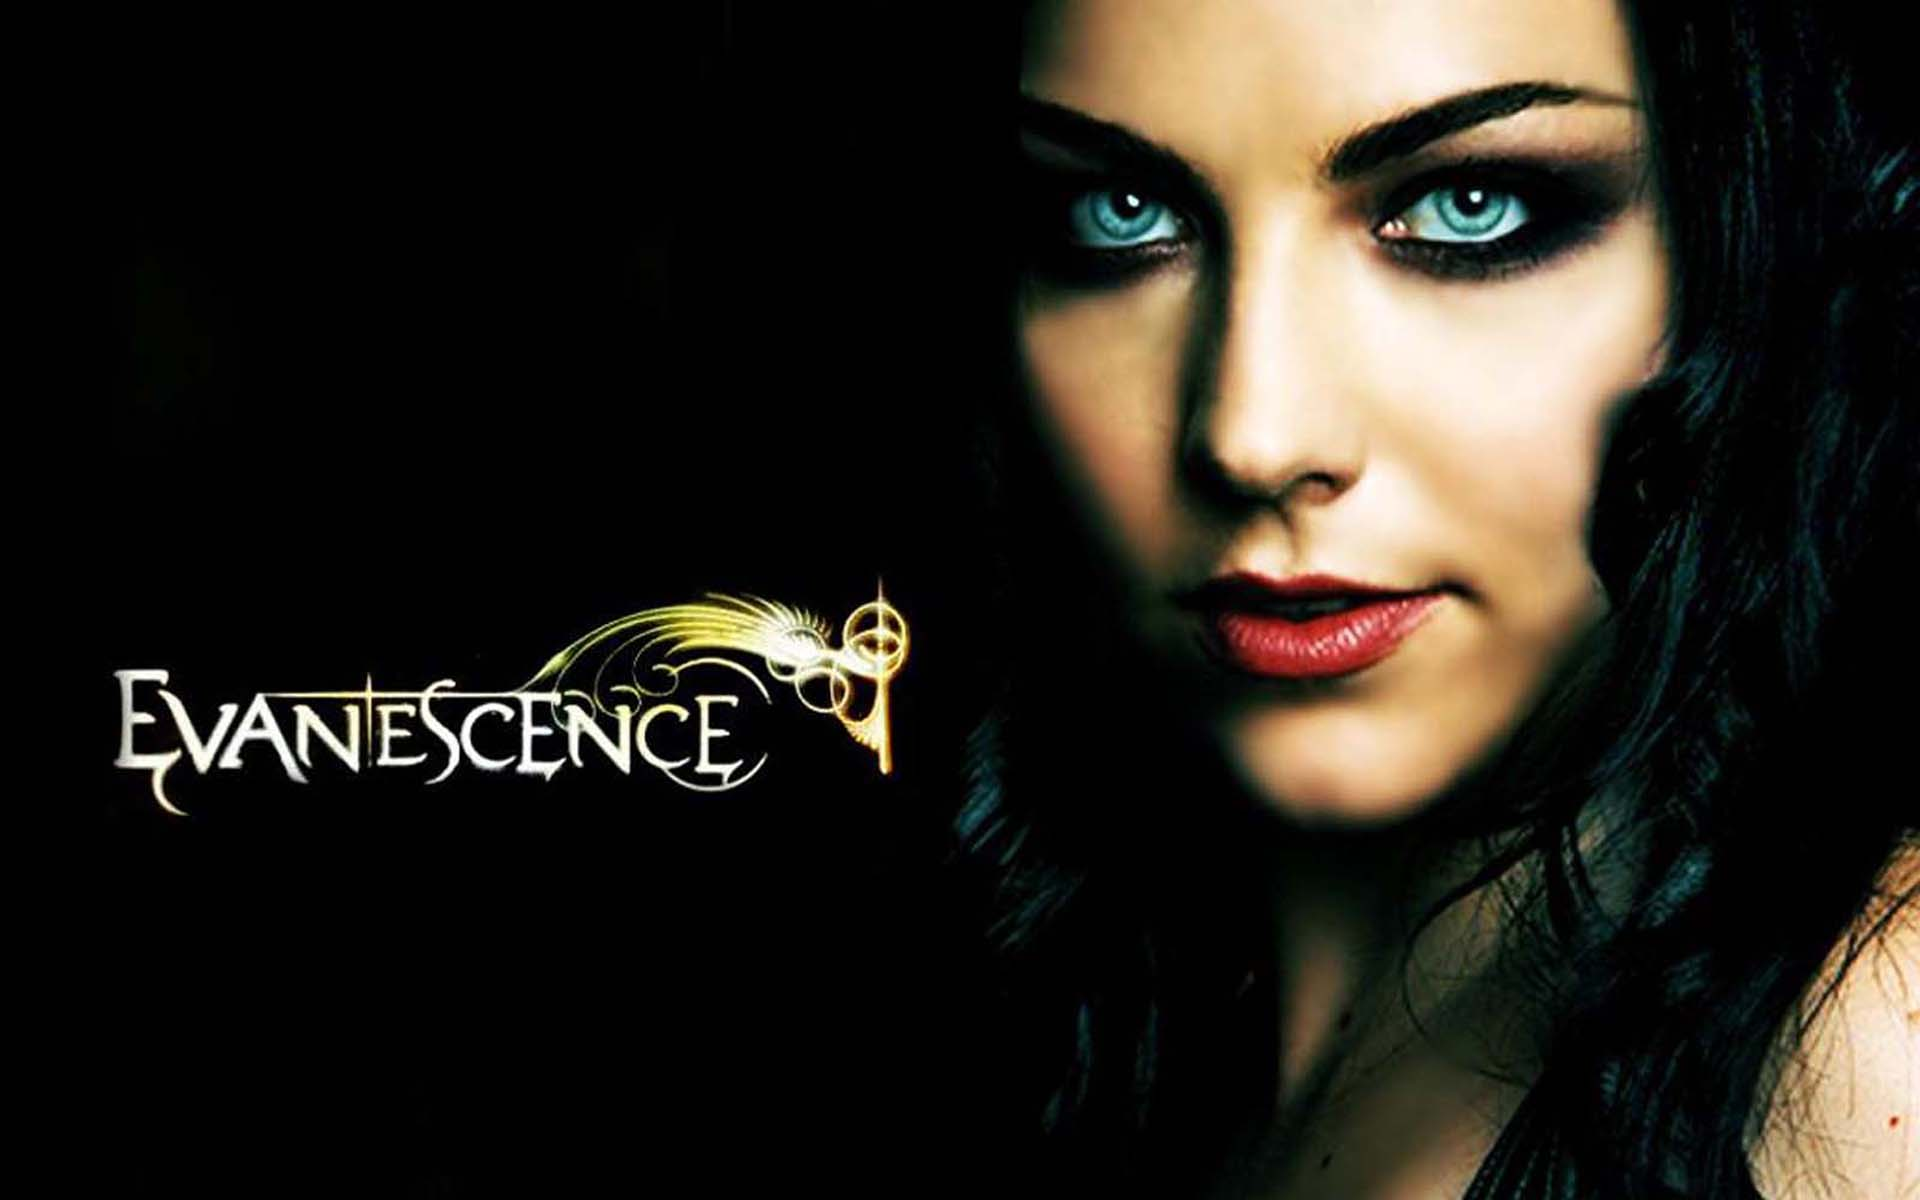 Evanescence Wallpaper 1920x1200 Wallpapers 1920x1200 1920x1200